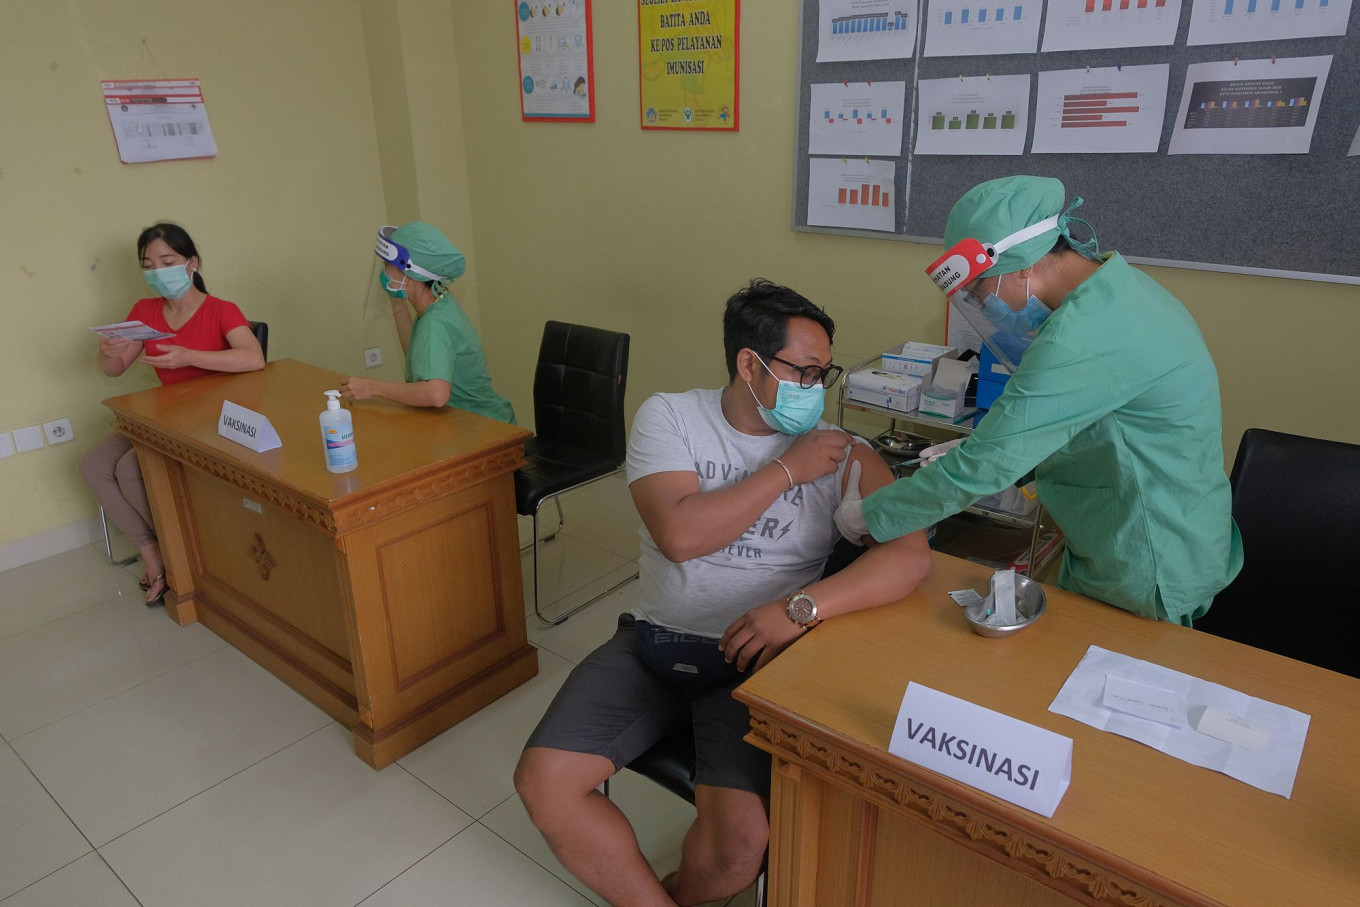 Java, Bali top priority to receive vaccines due to number of COVID-19 cases